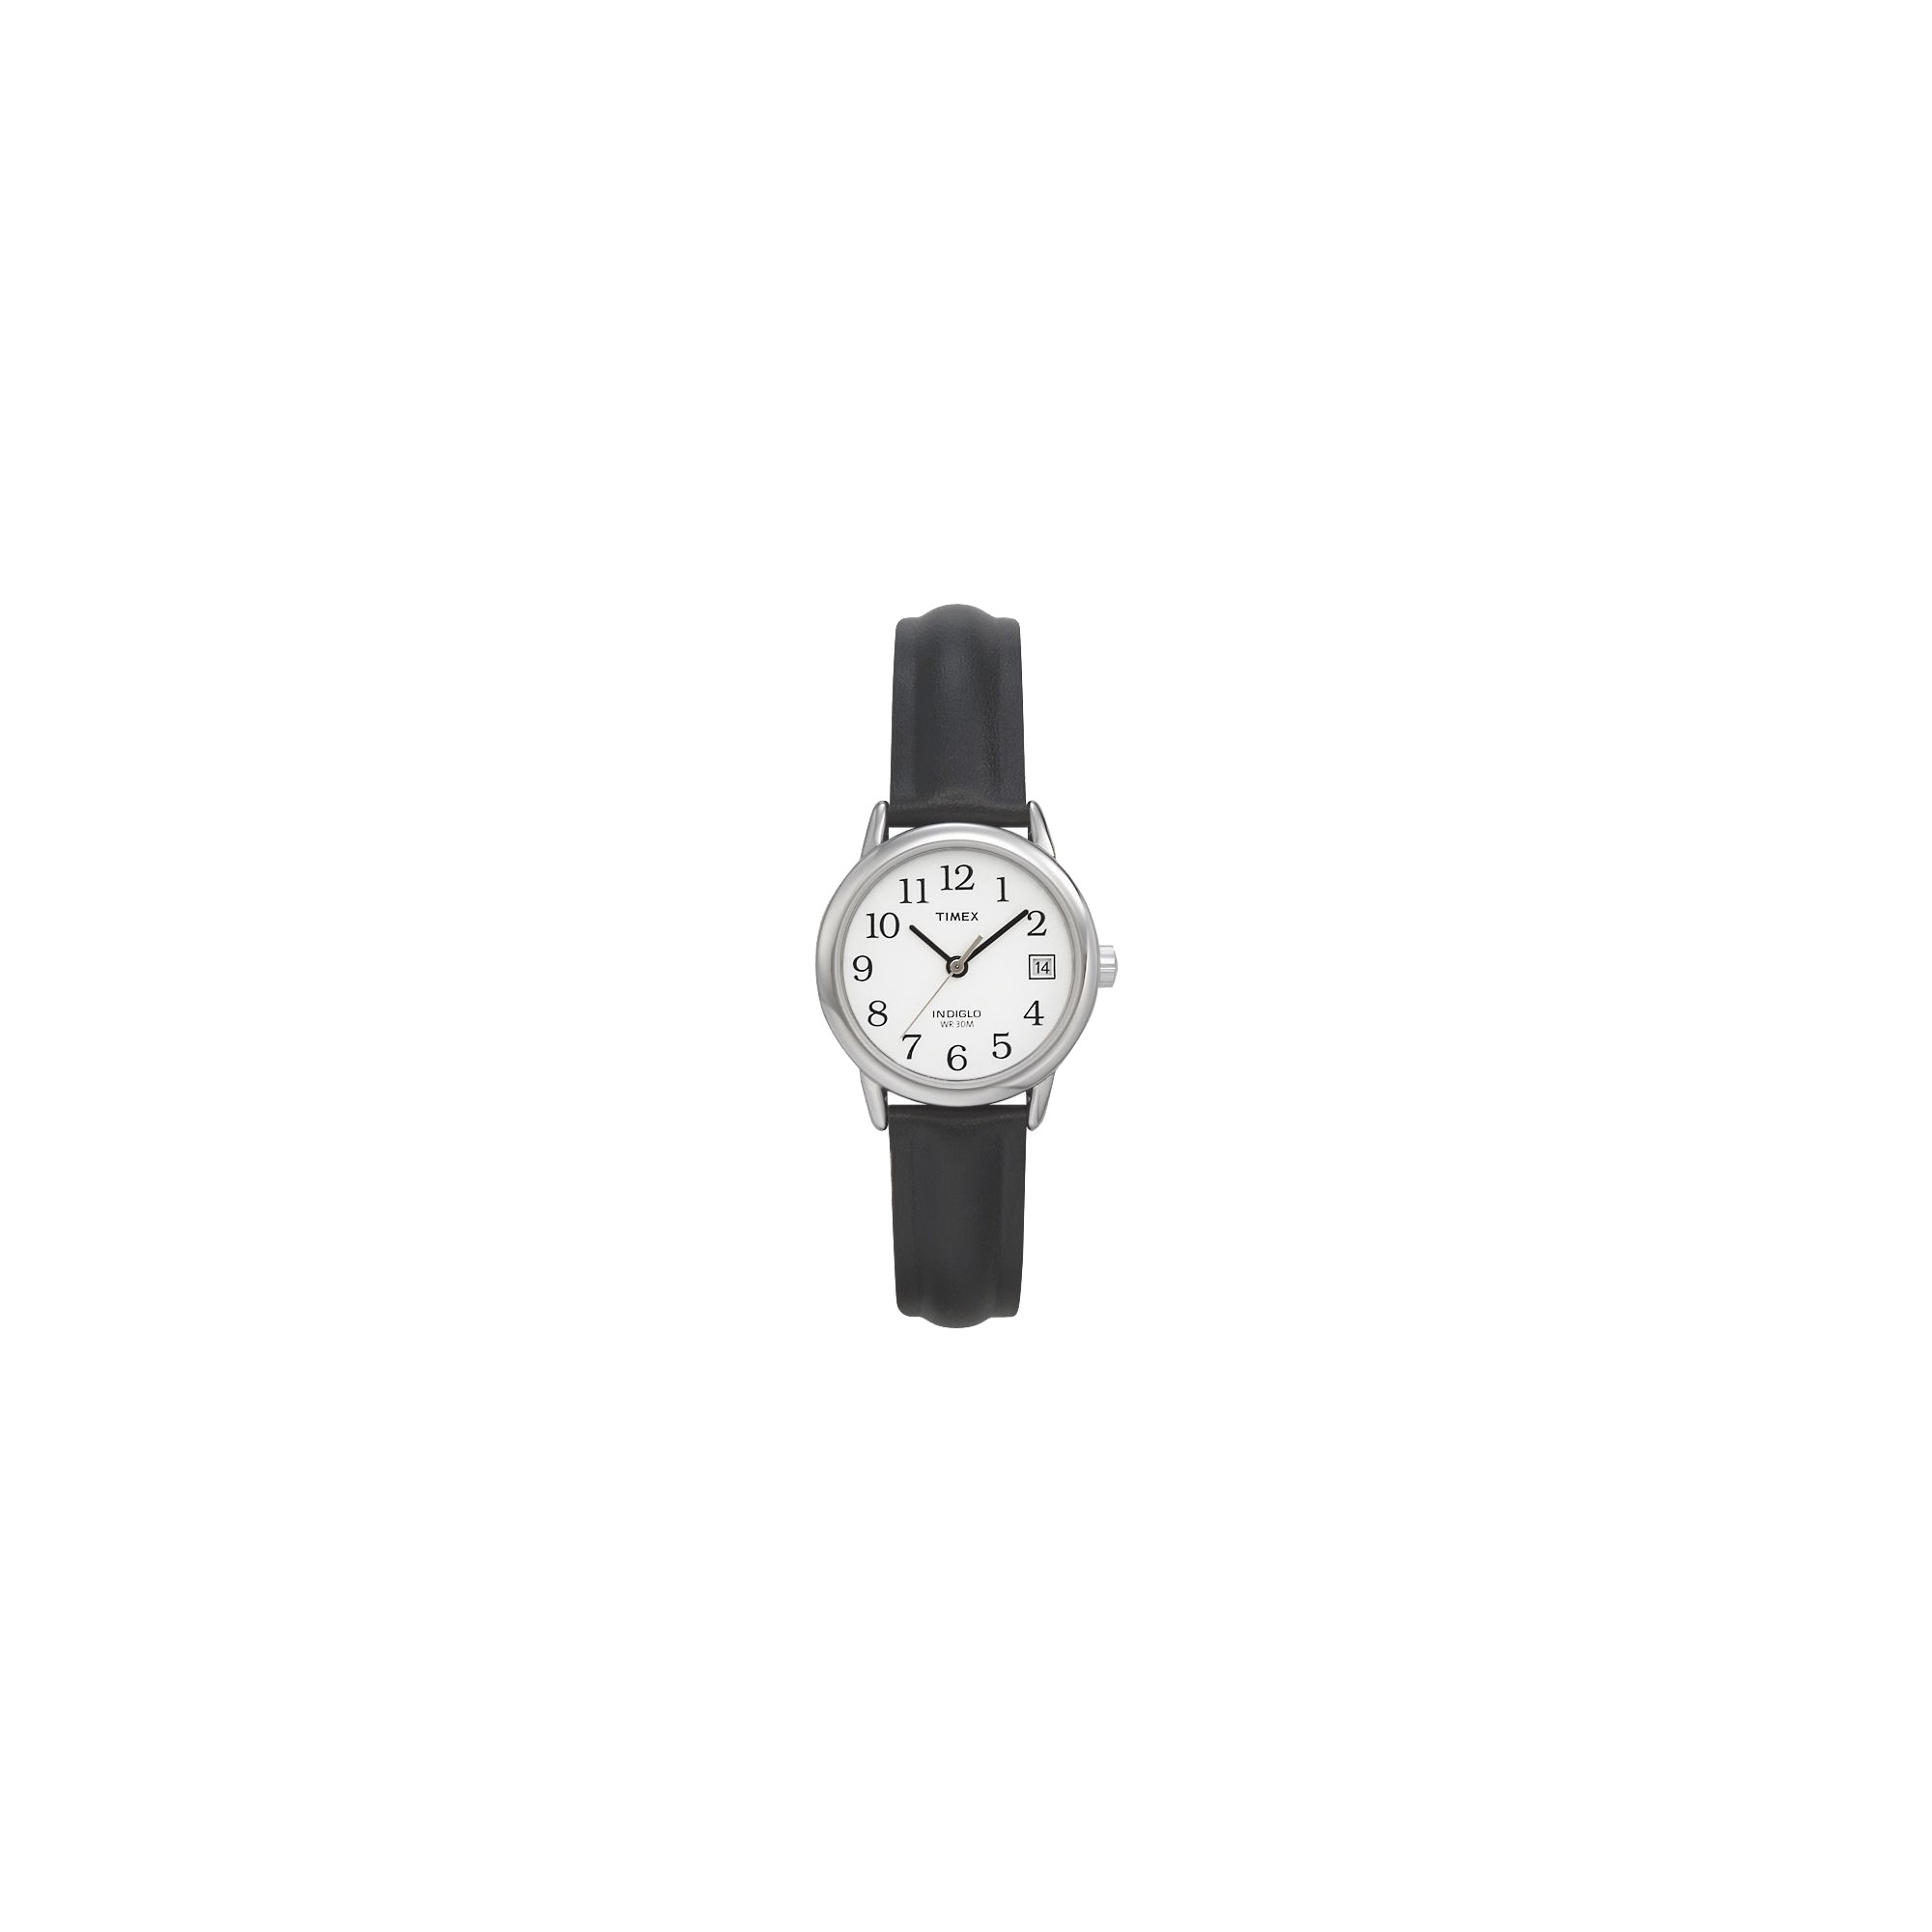 Women's Timex Easy Reader Watch with Leather Strap - Silver/Black T2H331JT, Size: Small